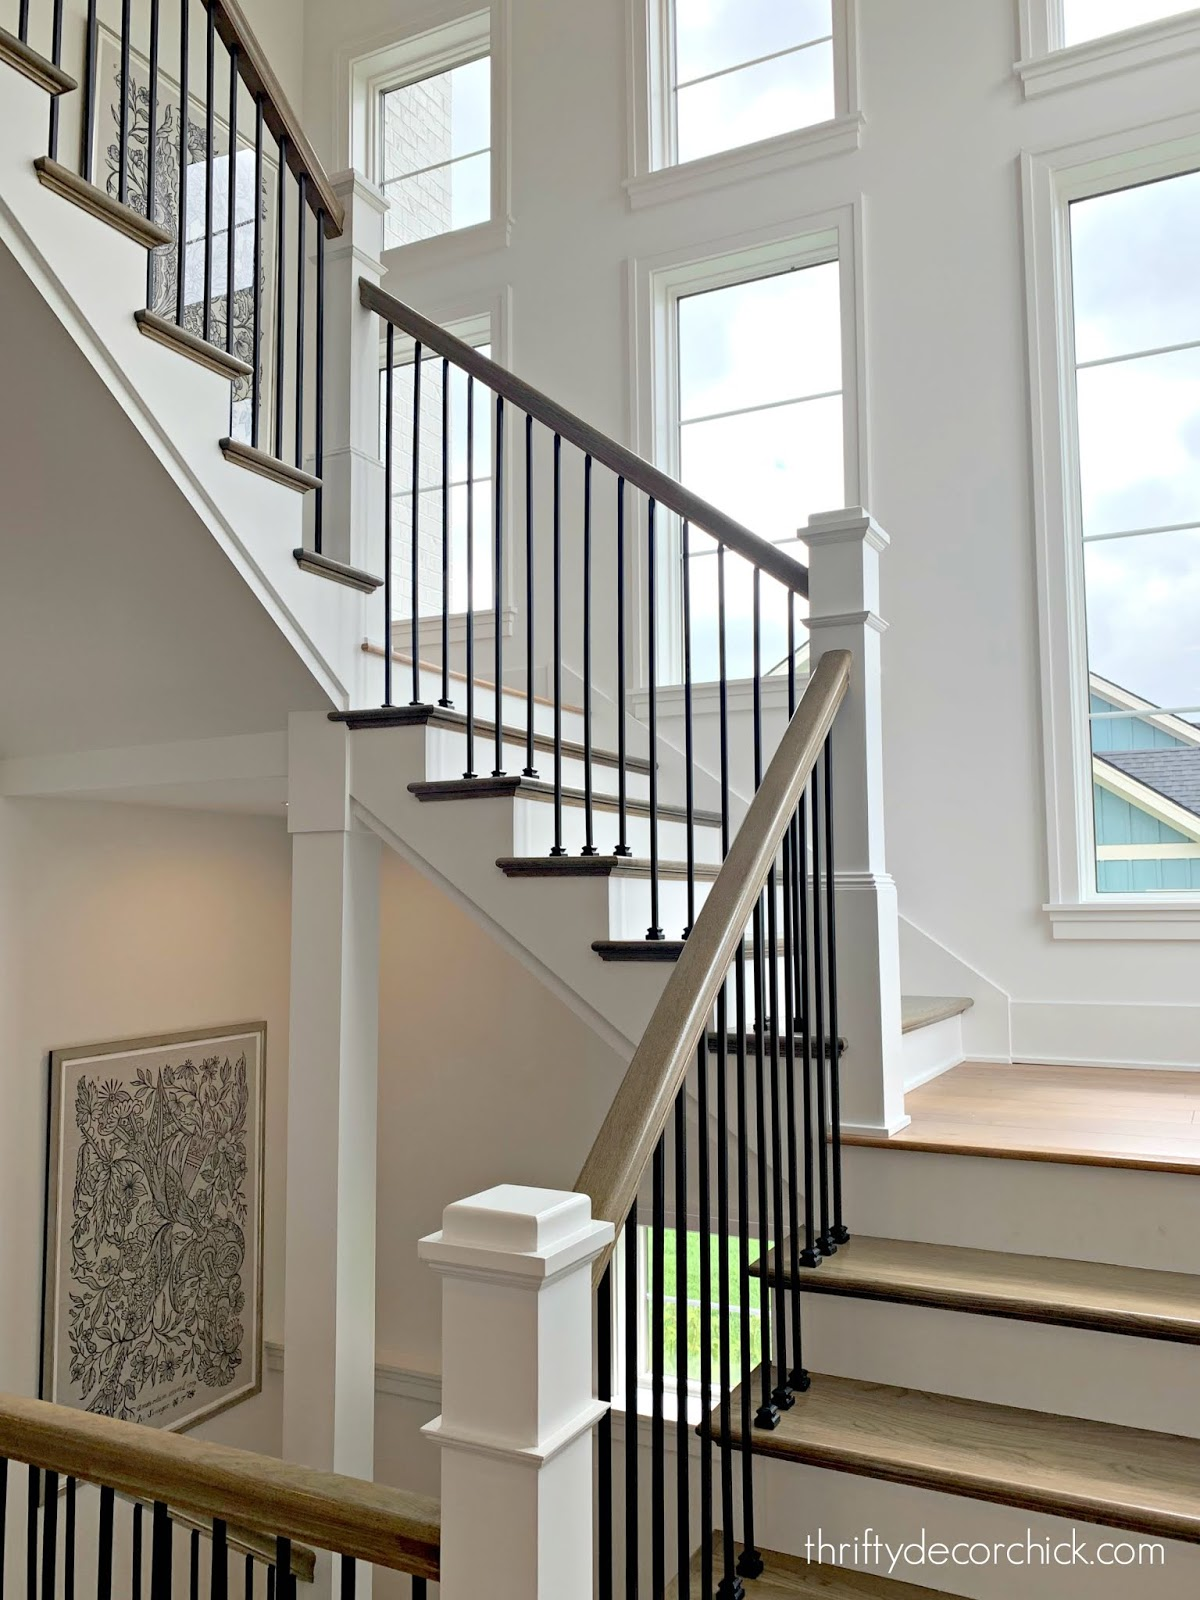 Open staircase with windows and black spindles